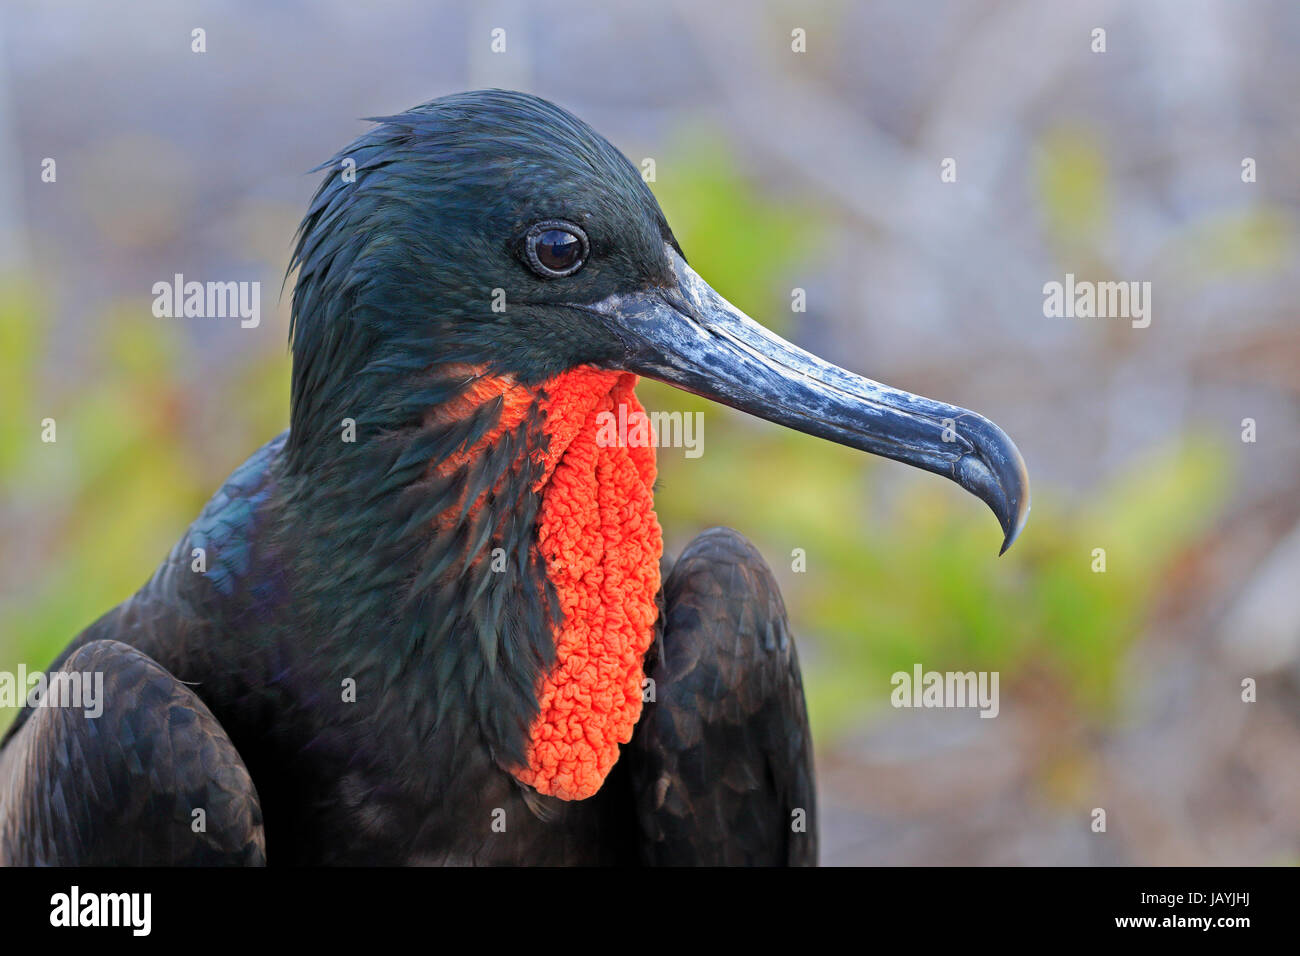 Male Adult Great Frigatebird showing its red gular in the Galapagos Islands - Stock Image